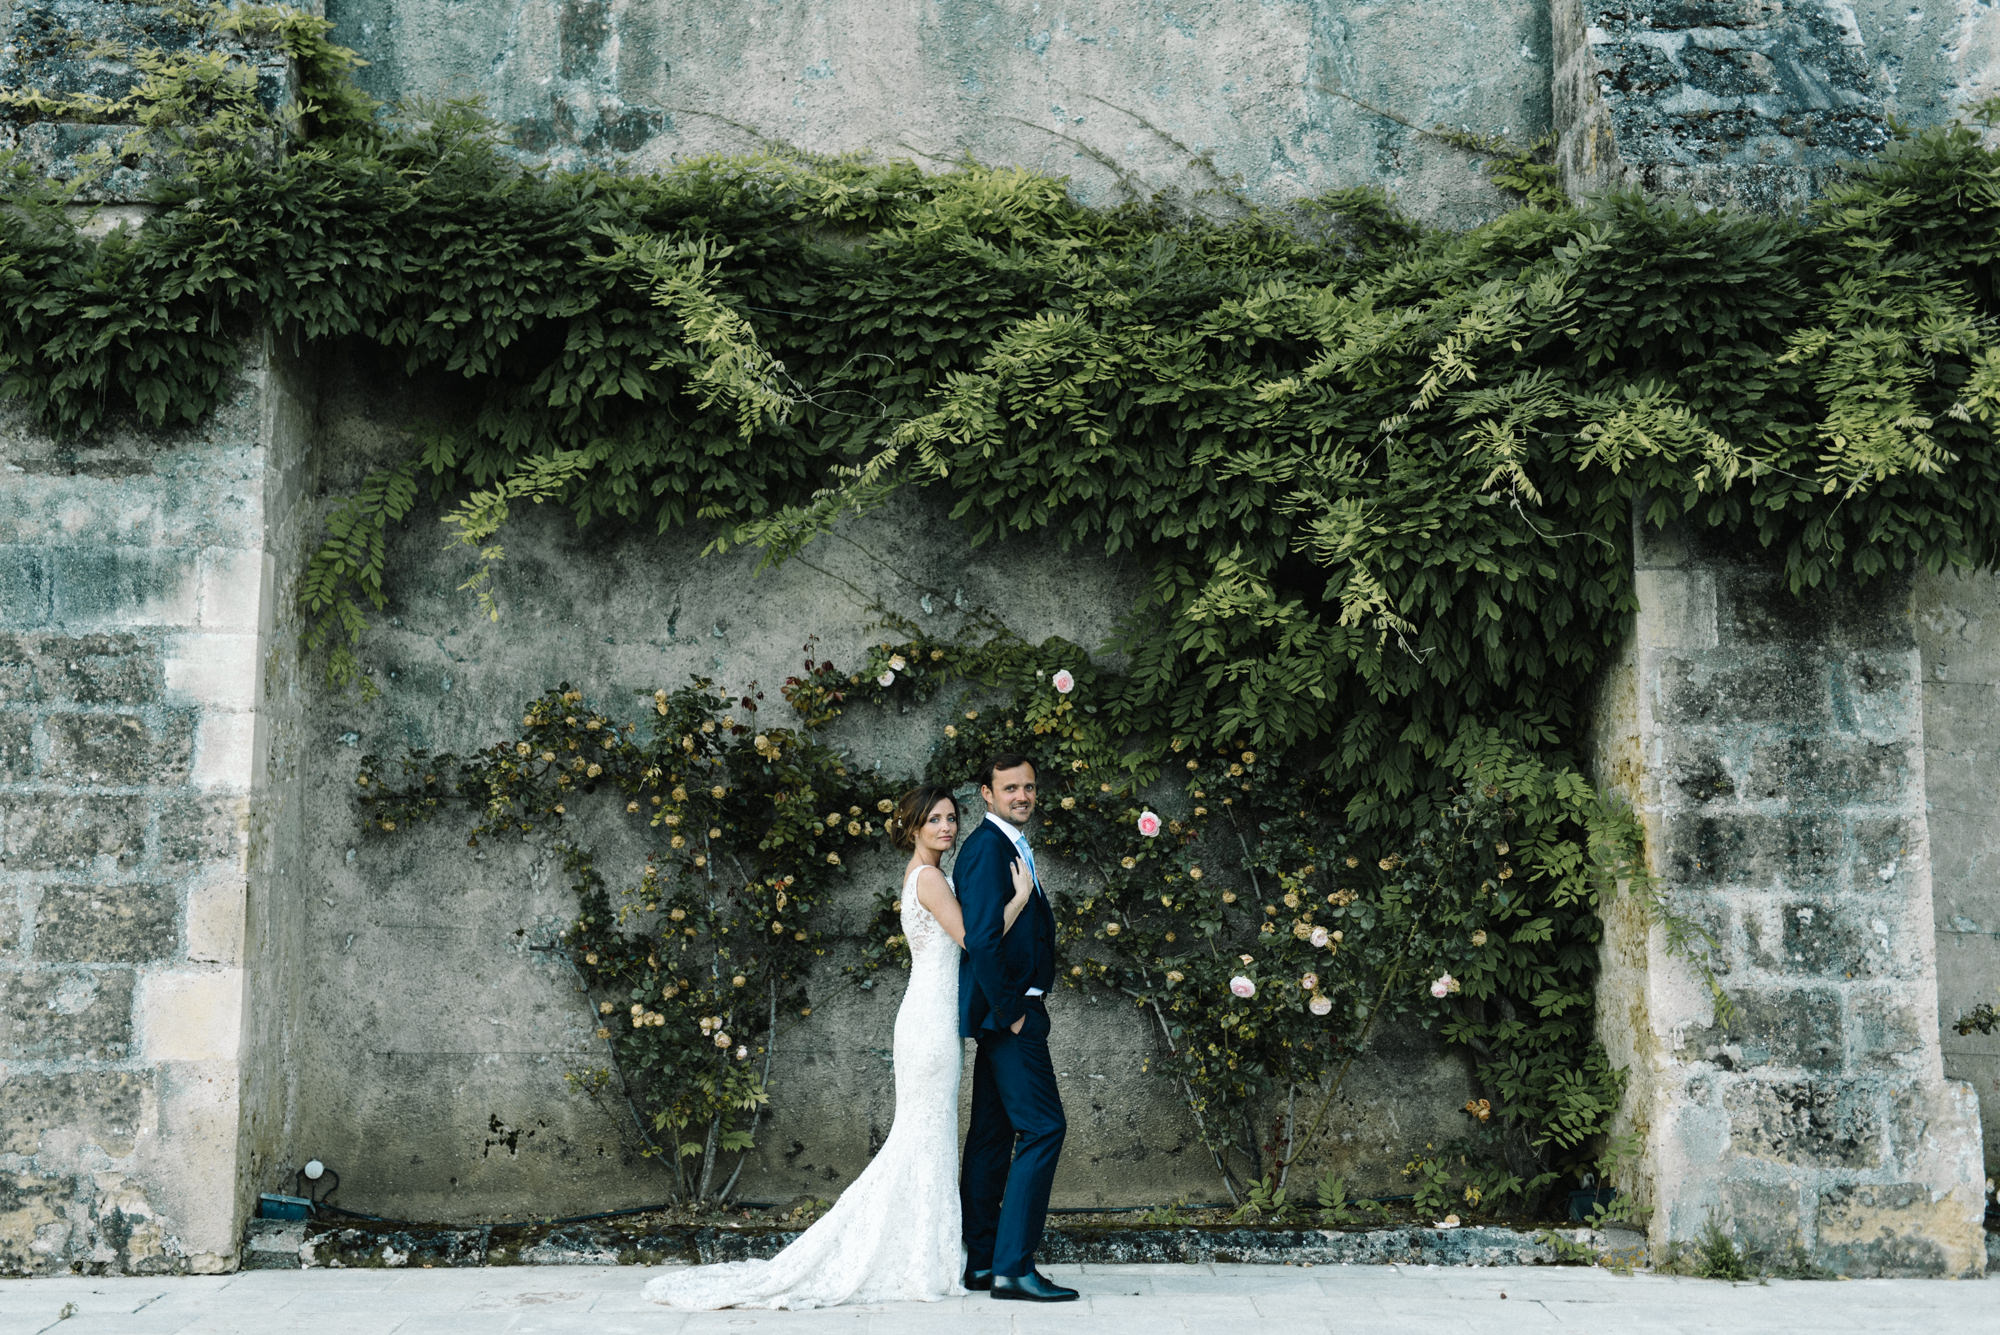 willybroussephotography-wedding-loirevalley-bidaudieres-laura-mathieu-90